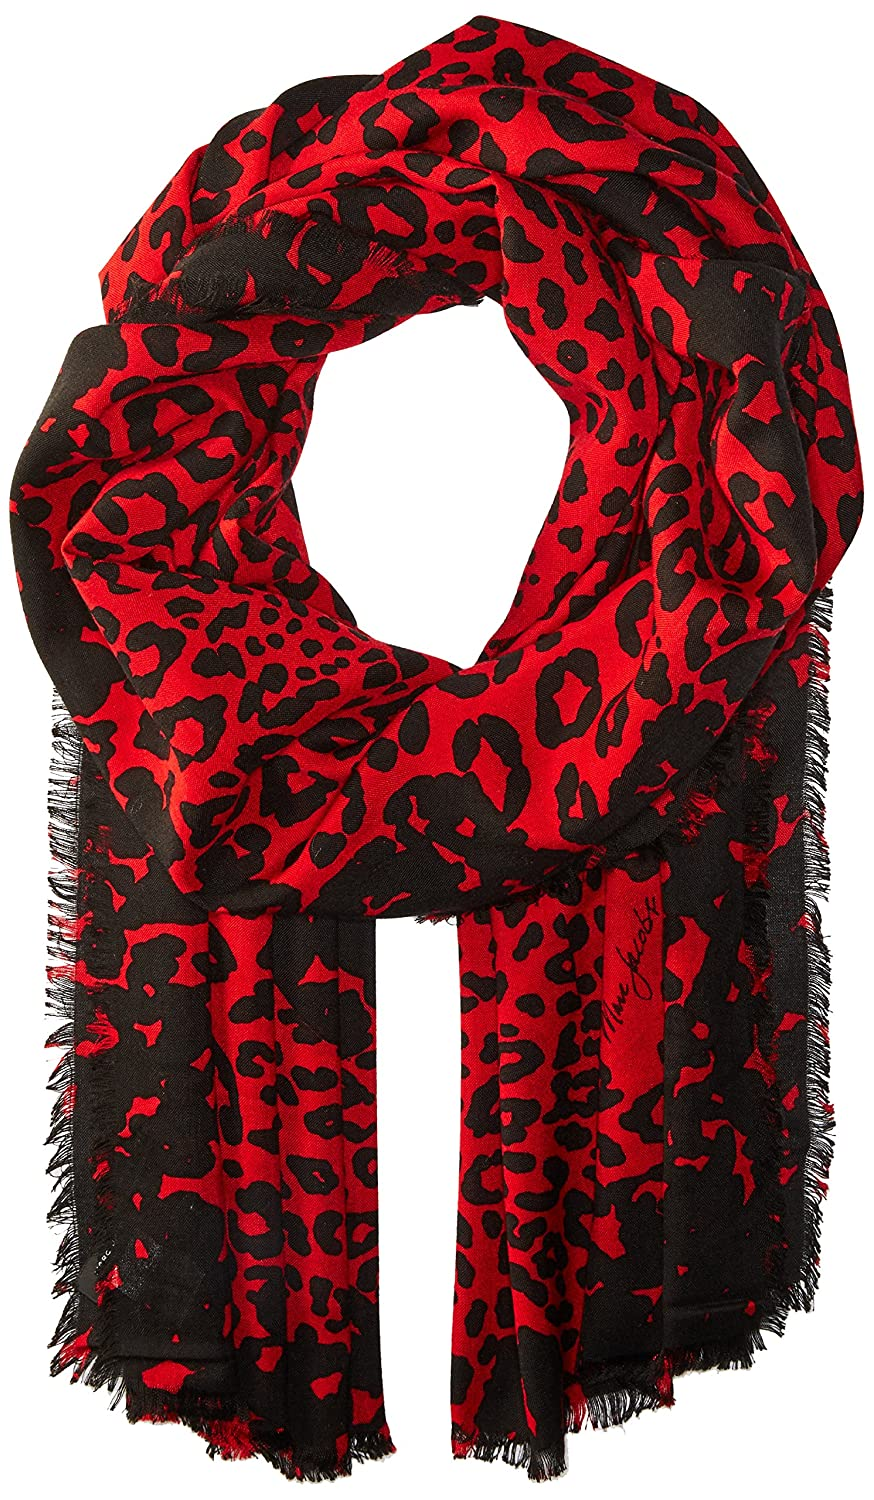 Marc Jacobs Women's Leopard Stole Scarf black/red One Size Marc by Marc Jacobs Women' s Accessories M0012353